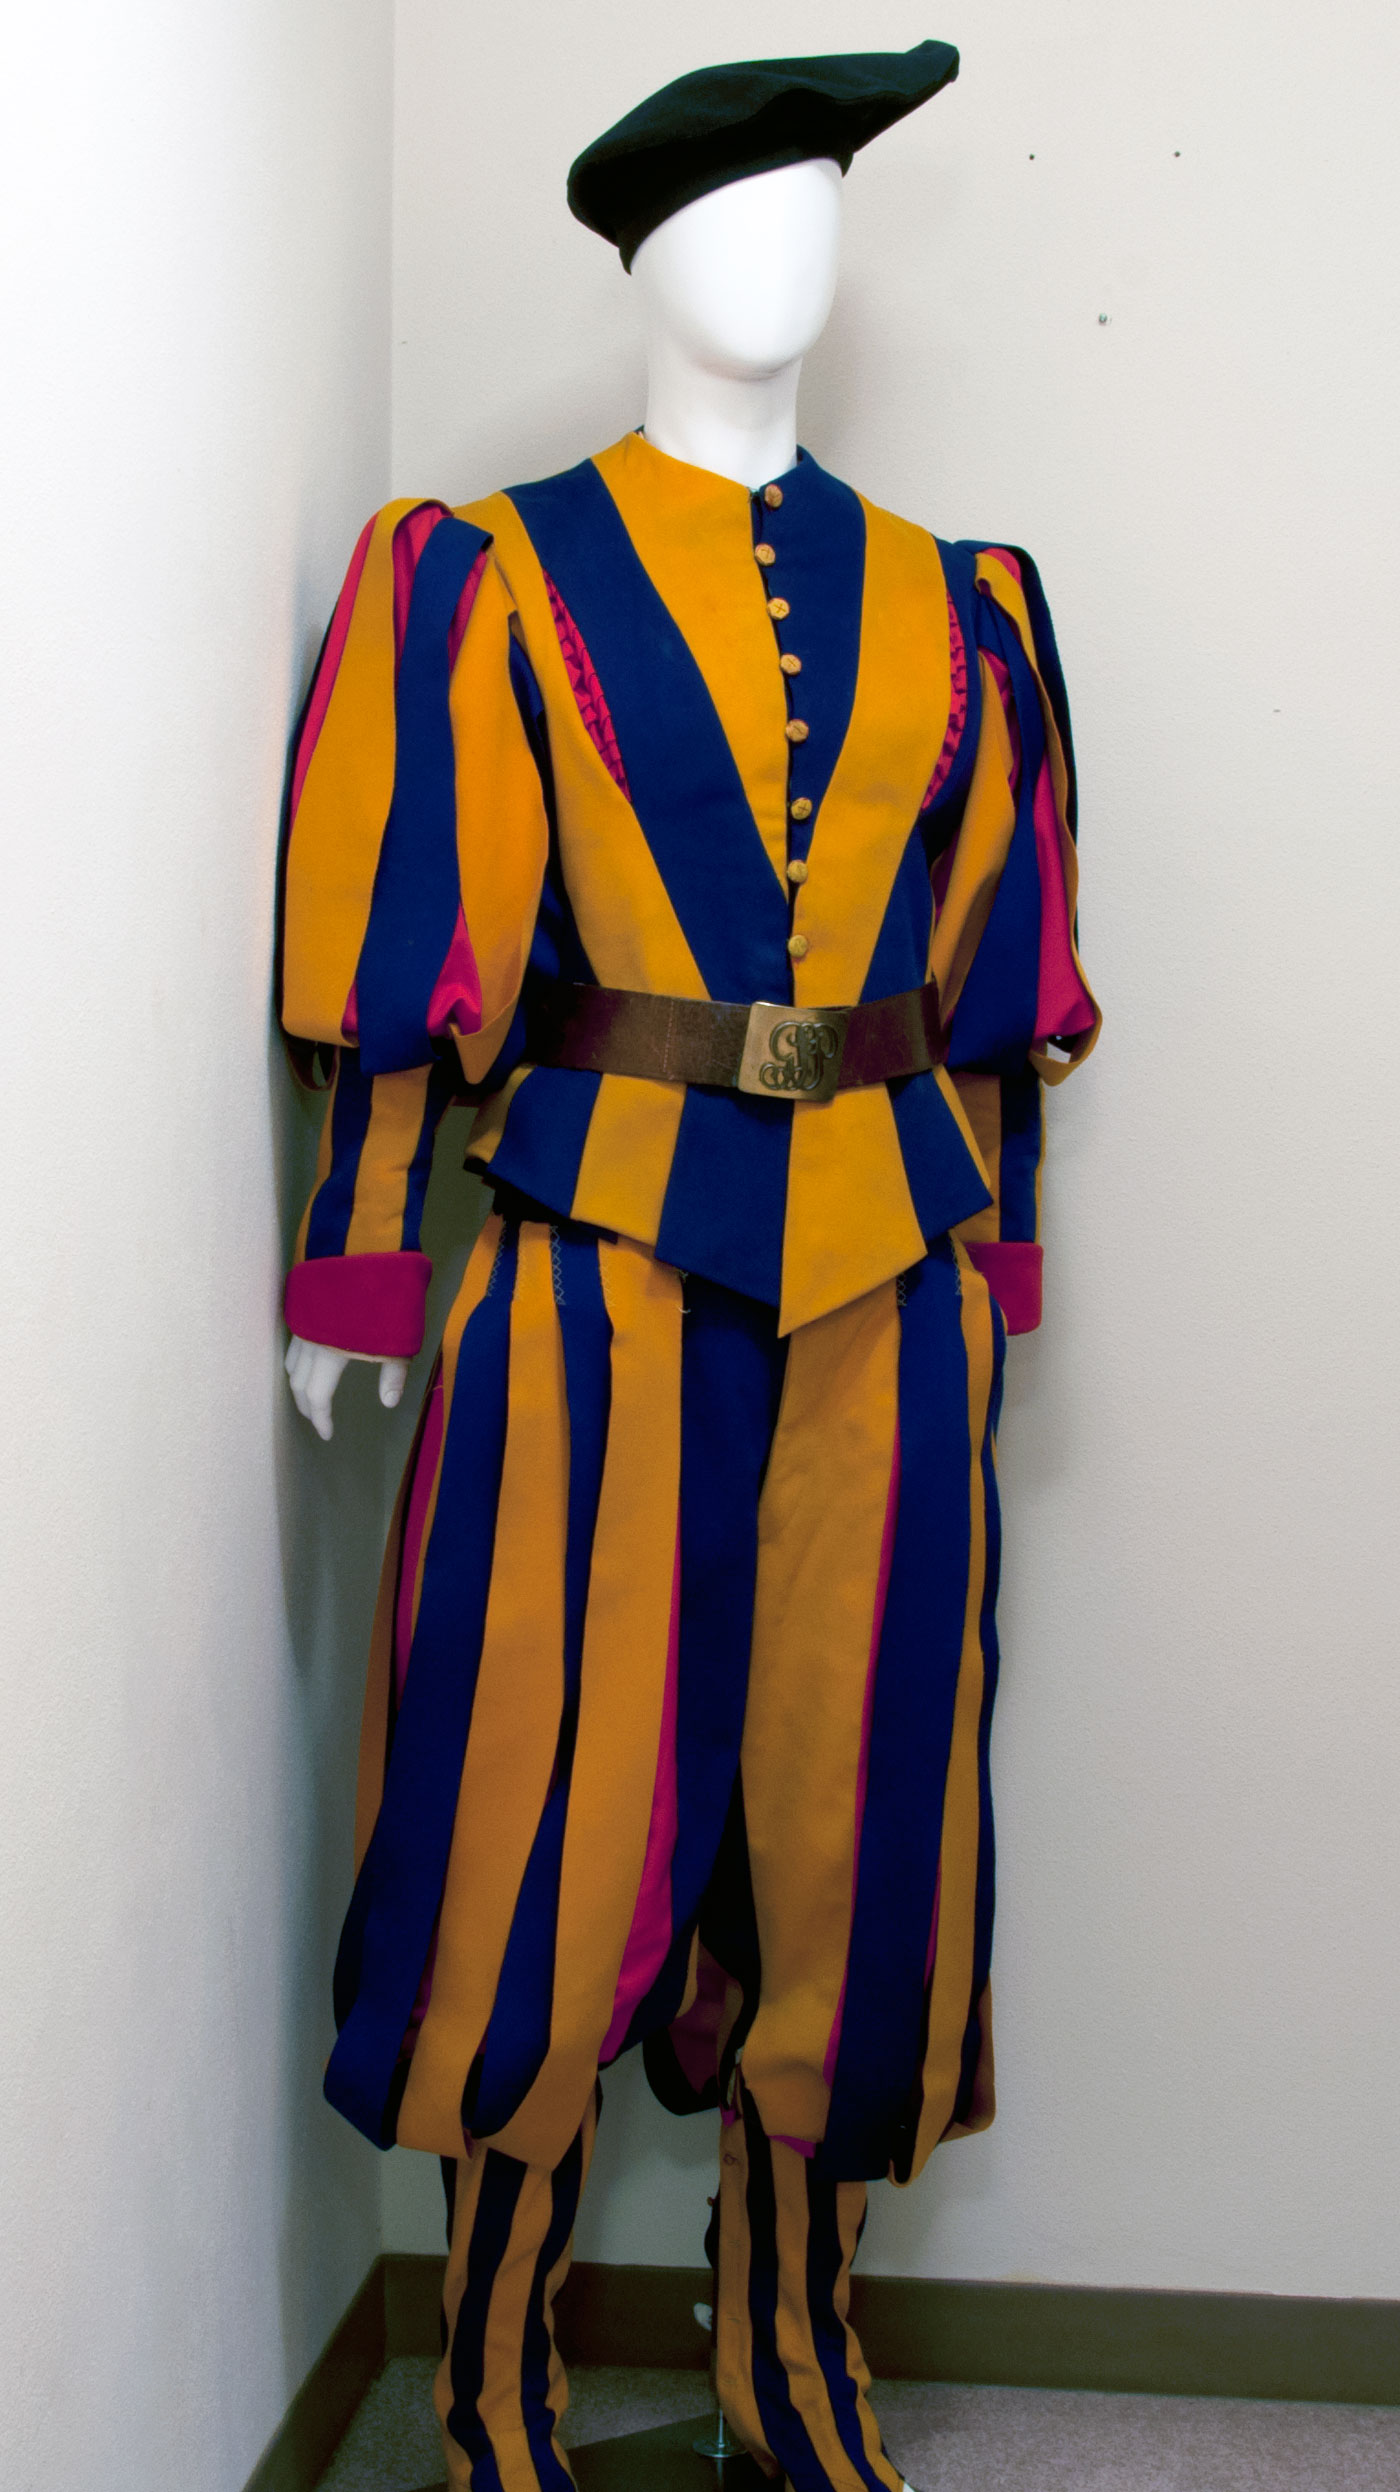 Swiss Guard uniform from the pontificate of Pius XII